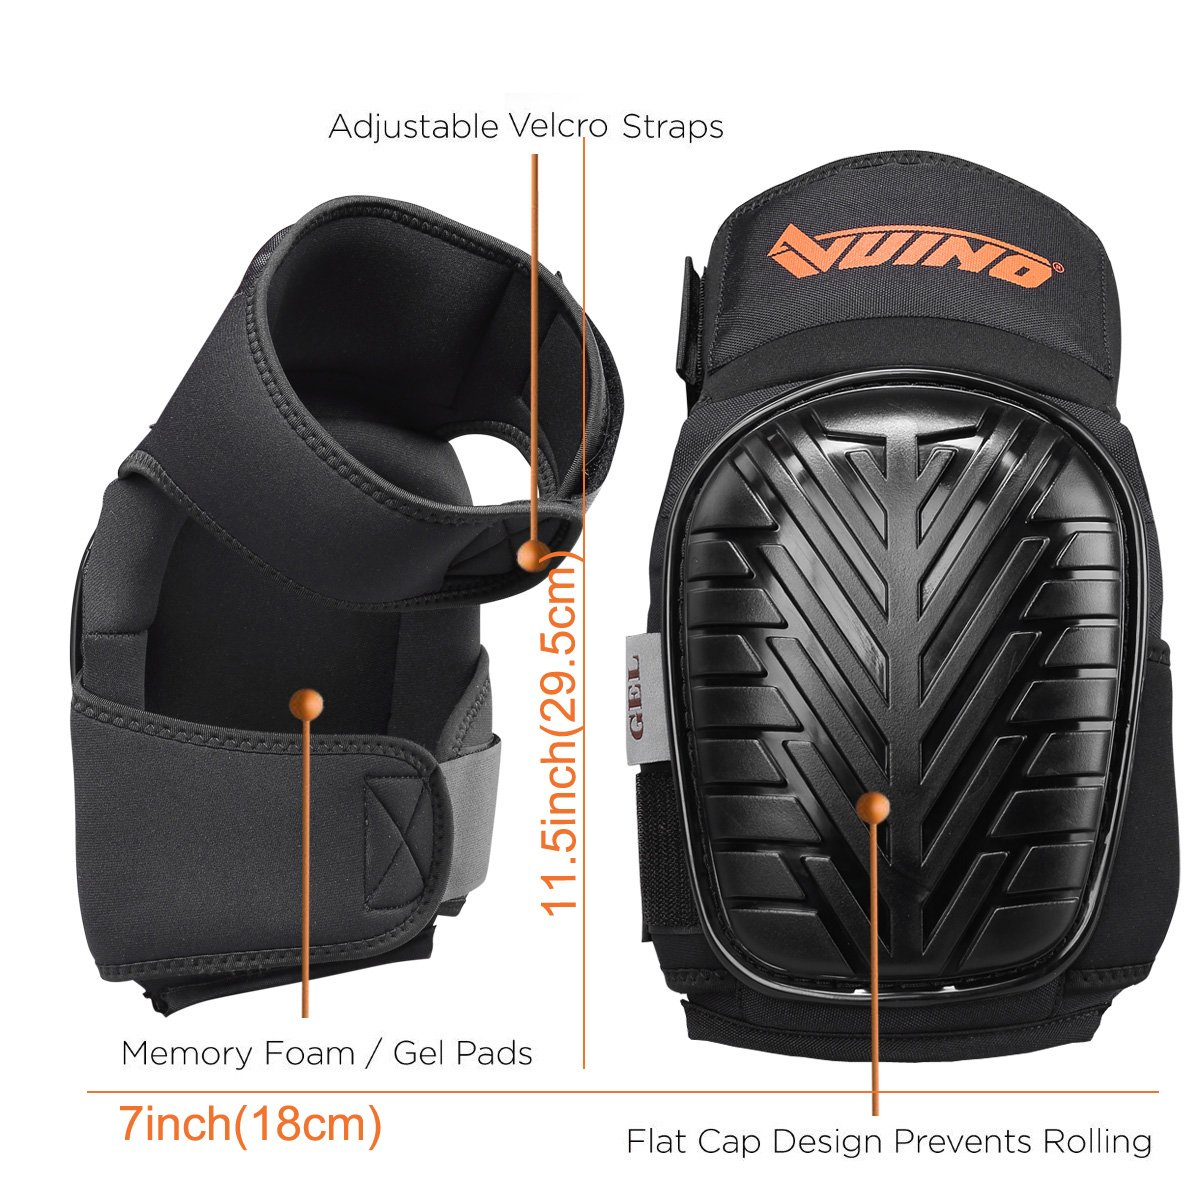 VUINO Professional Heavy Duty EVA Foam Padding Knee Pads with Comfortable Gel Cushion and Adjustable Straps for Working, Gardning, Cleaning, Flooring, Tiling and Construction (Black) by Ningbo Xinweinuo Fanghuyongpin Co.,Ltd (Image #3)